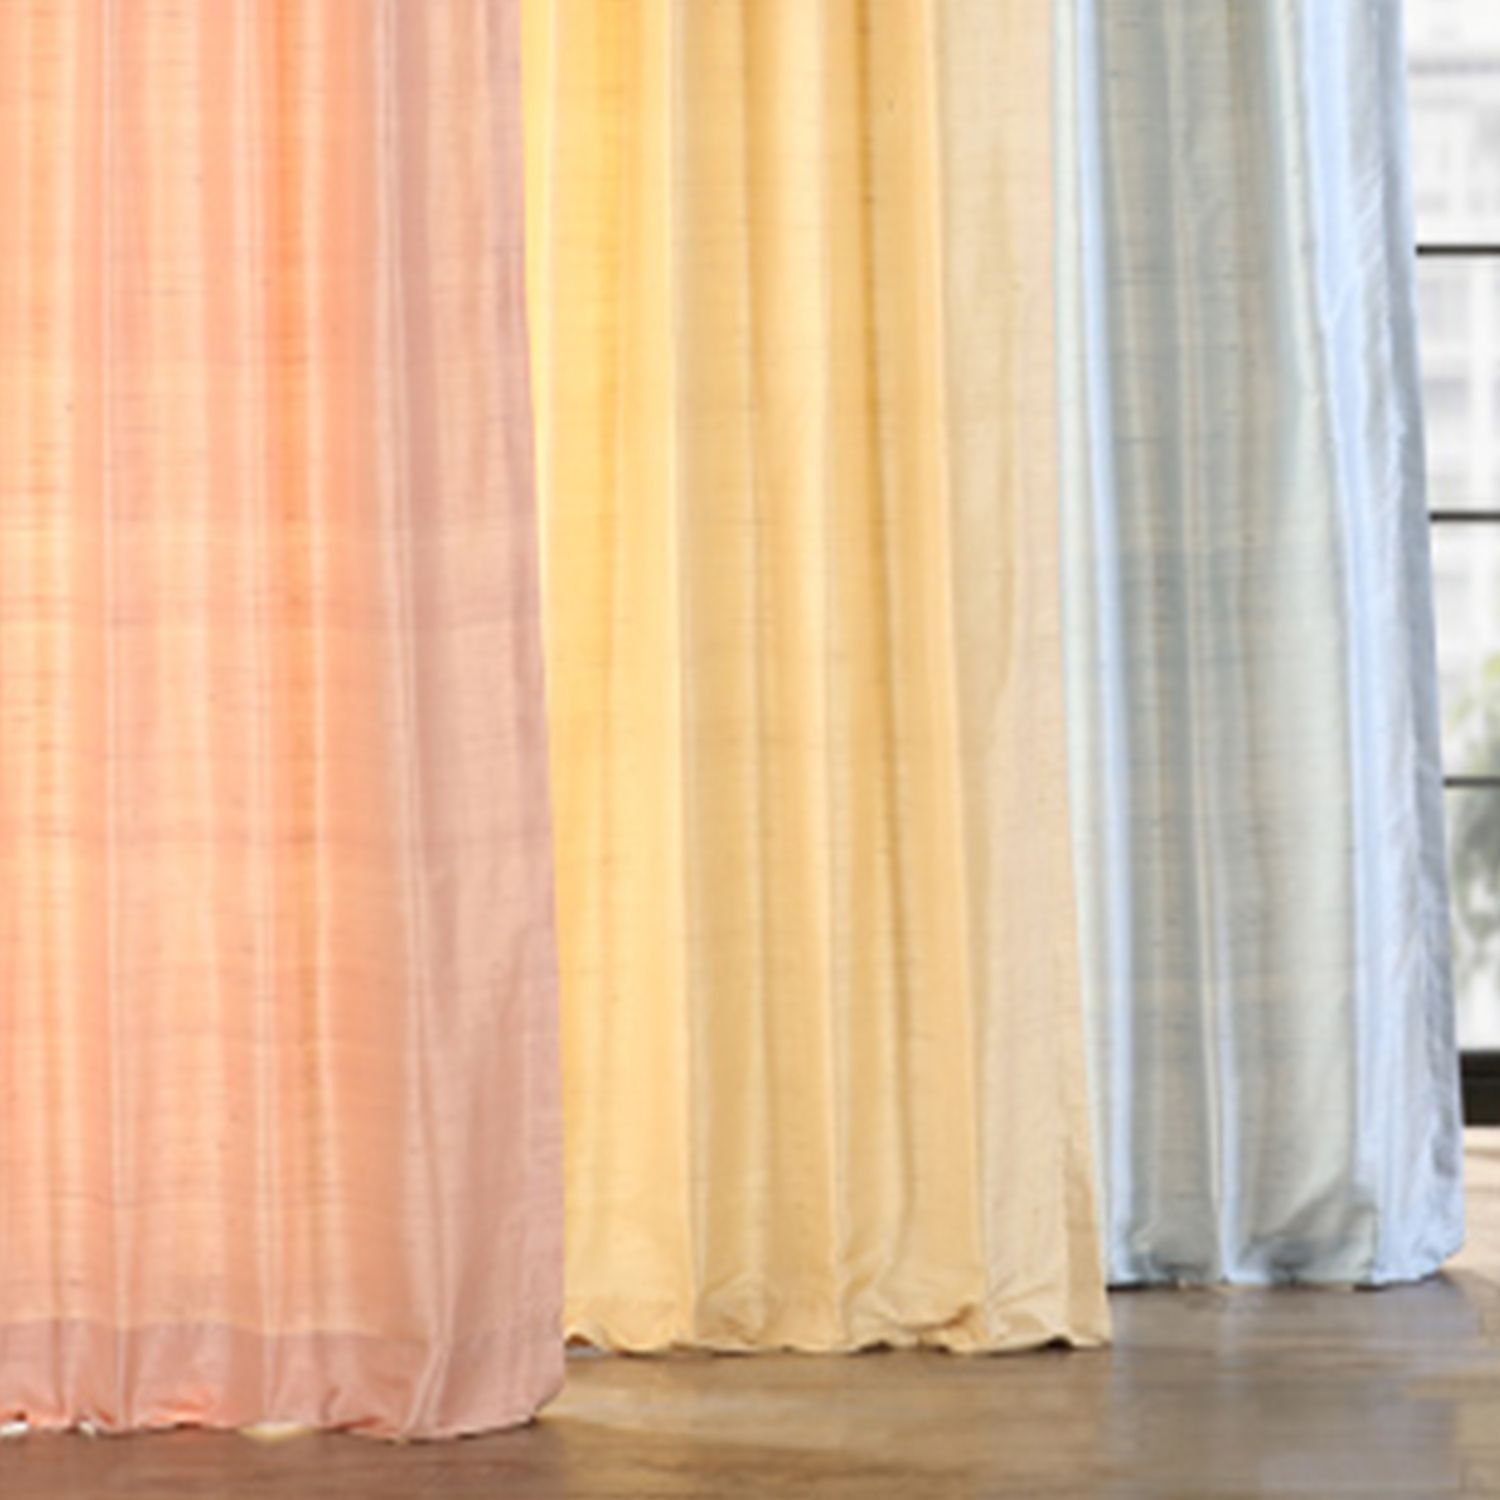 Get The Very Best Quality With The Classic Beauty Of Our Textured Dupioni Silk Curtains Design In Bold Modern In 2020 Silk Curtains Dupioni Silk Curtain Design Modern